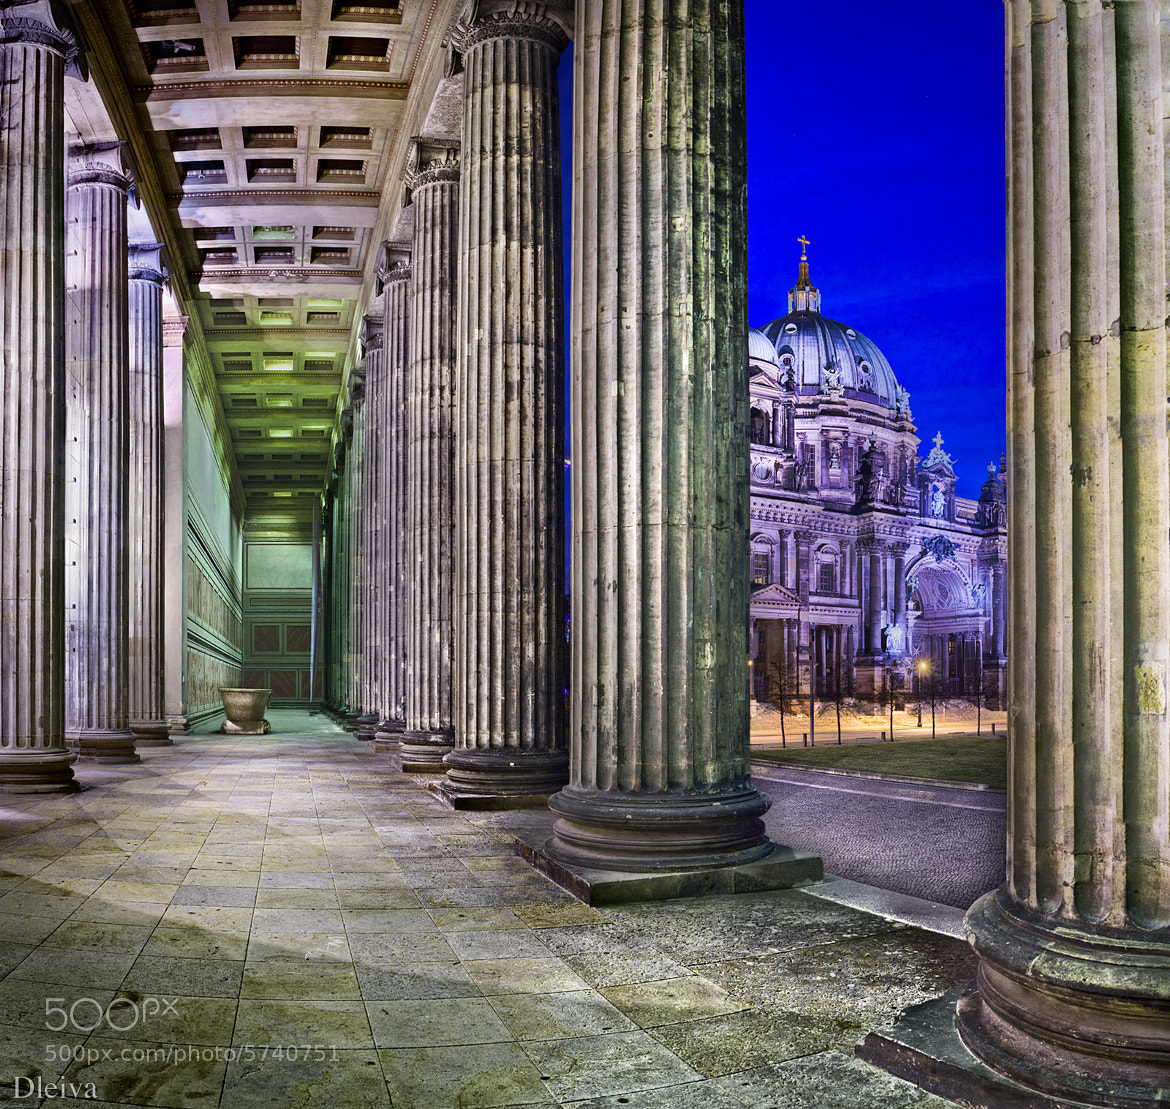 Photograph Catedral de Berlín  by Domingo Leiva on 500px